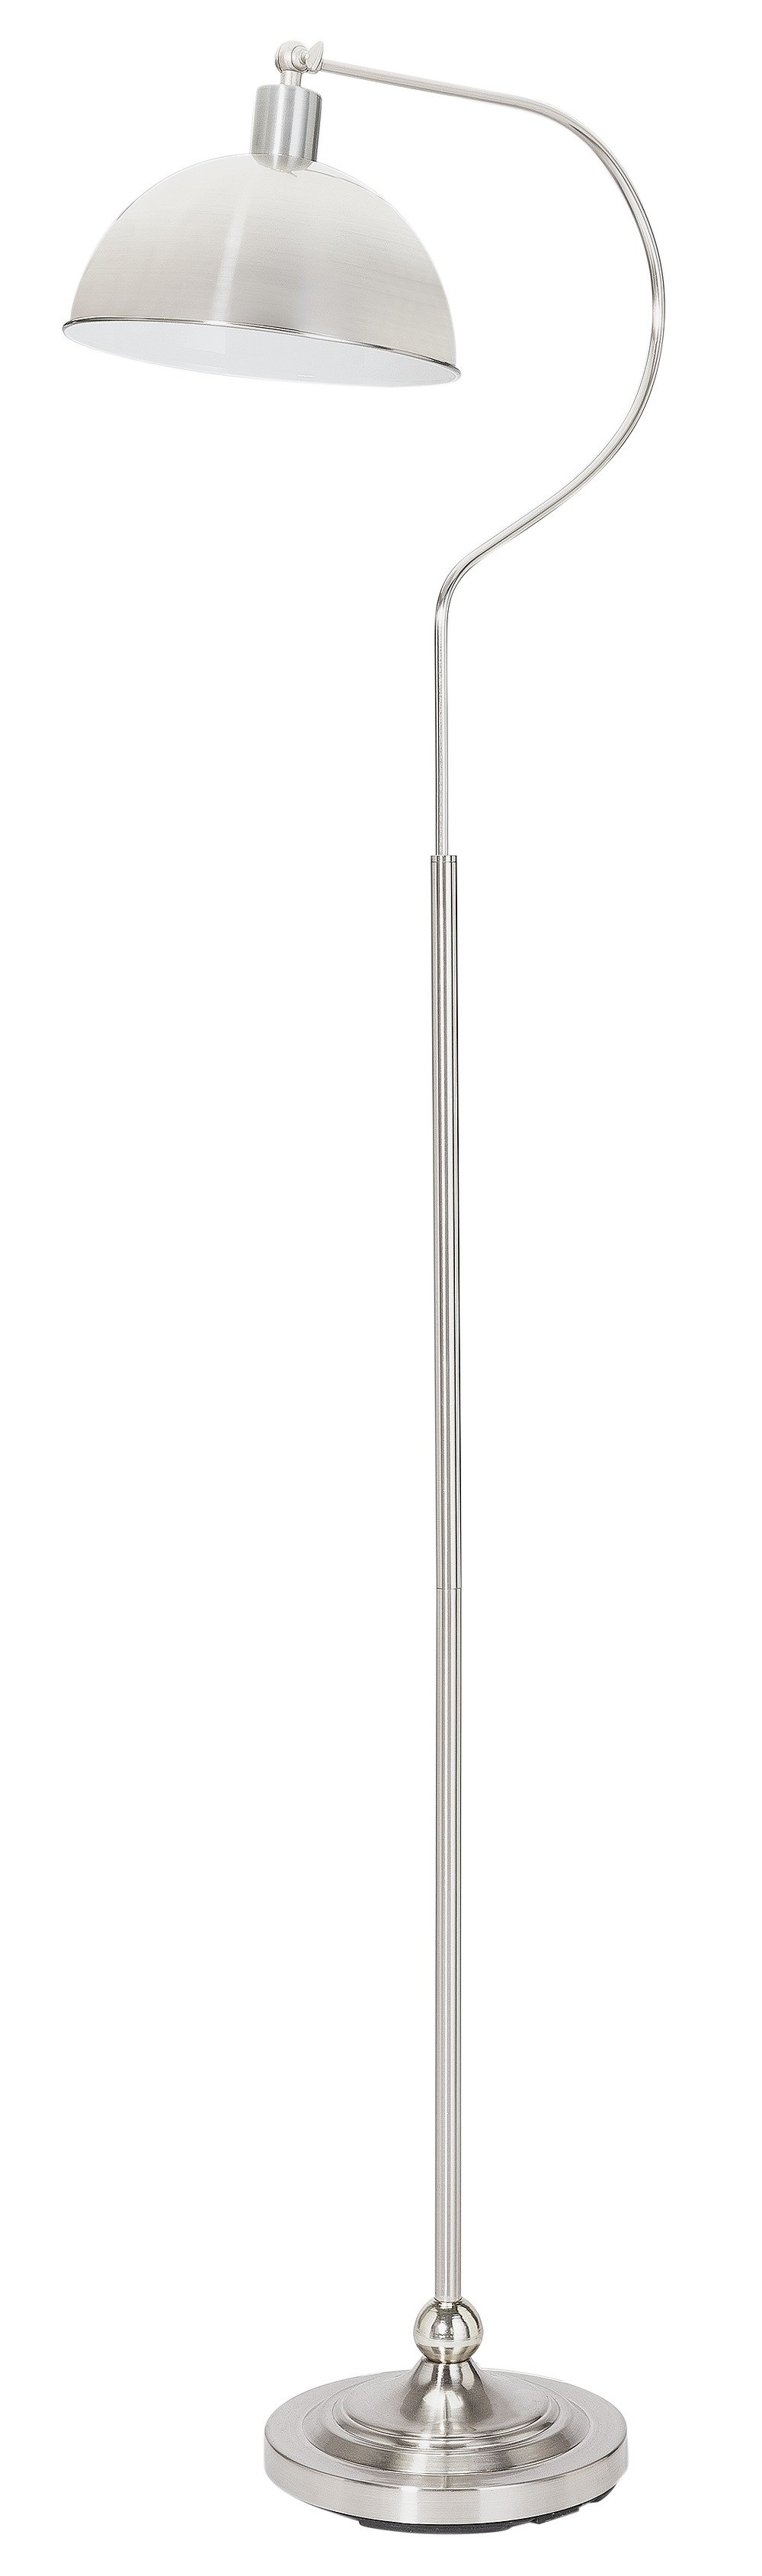 home coral curved floor lamp  satin nickel.